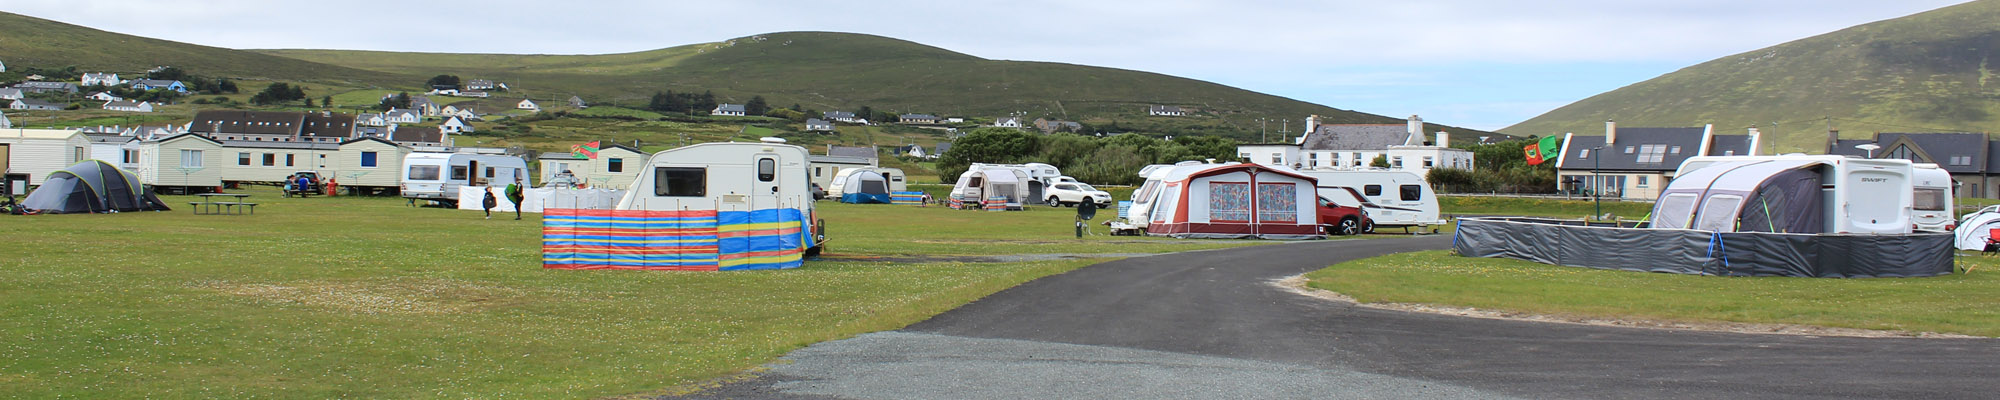 Keel Sandybanks Camping & Caravan Park | Mobile Homes